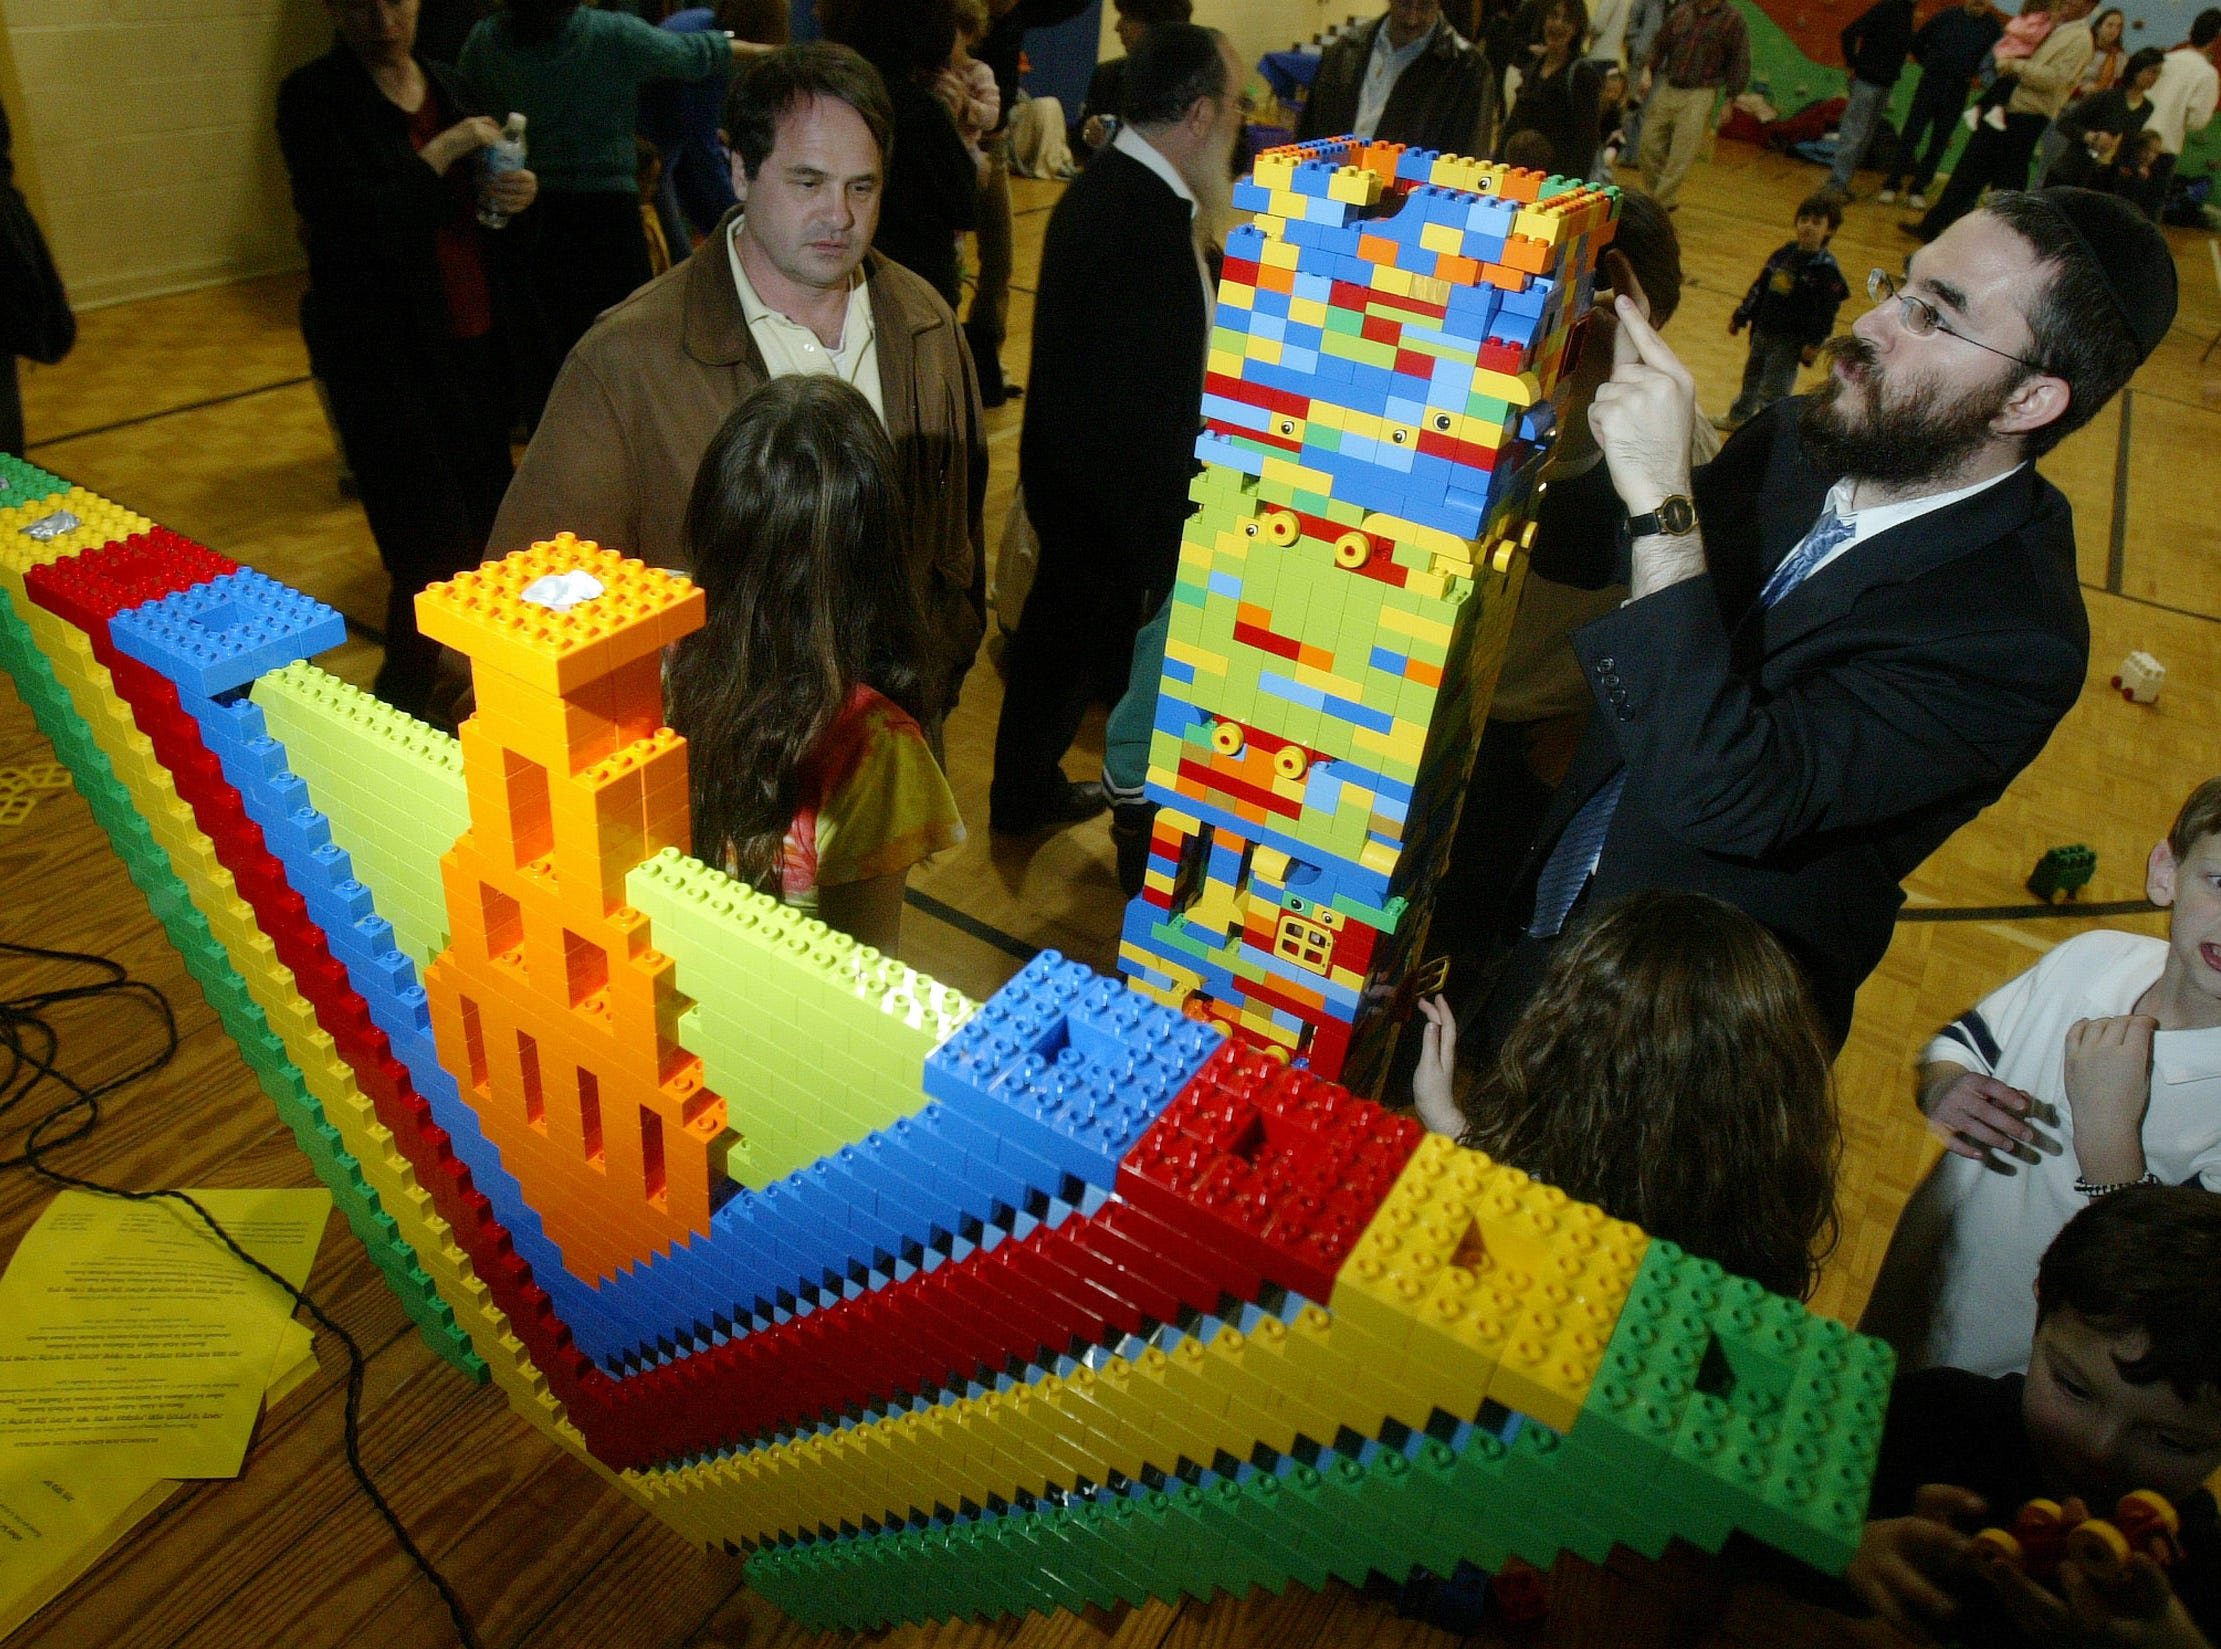 Rabbi Yossi Wilhelm assembles the sections of the base that will hold the menorah during a Hanukkah festival held at the  Arnstein Jewish Community Center. The children used building blocks to make a 10-foot menorah. 12/28/05